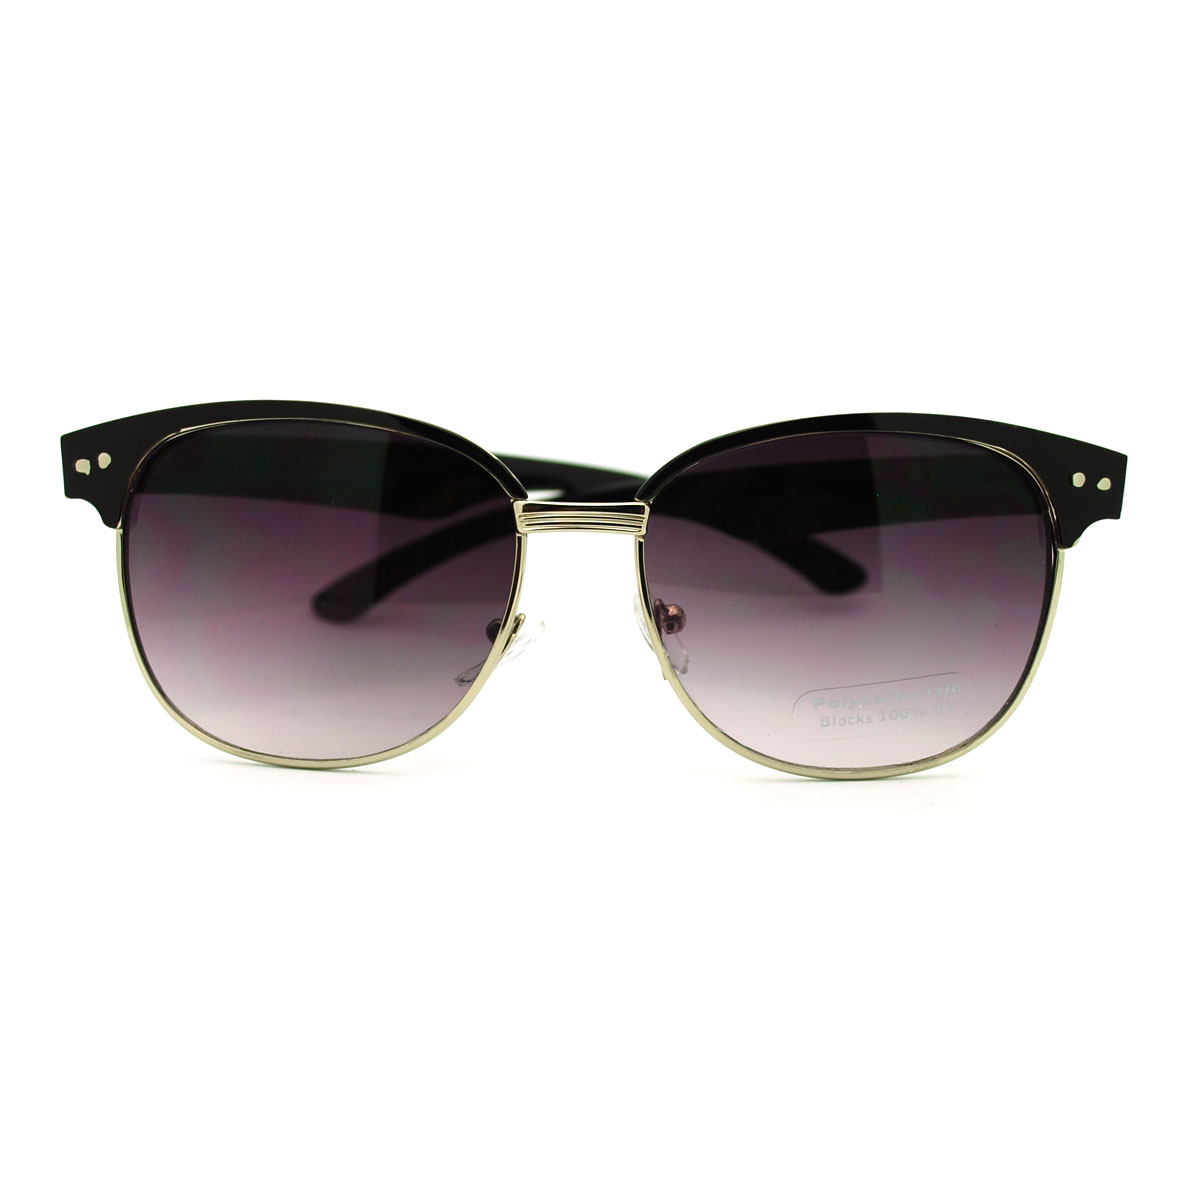 556047d82d81 Designer Sunglasses With Two Dots On The Side